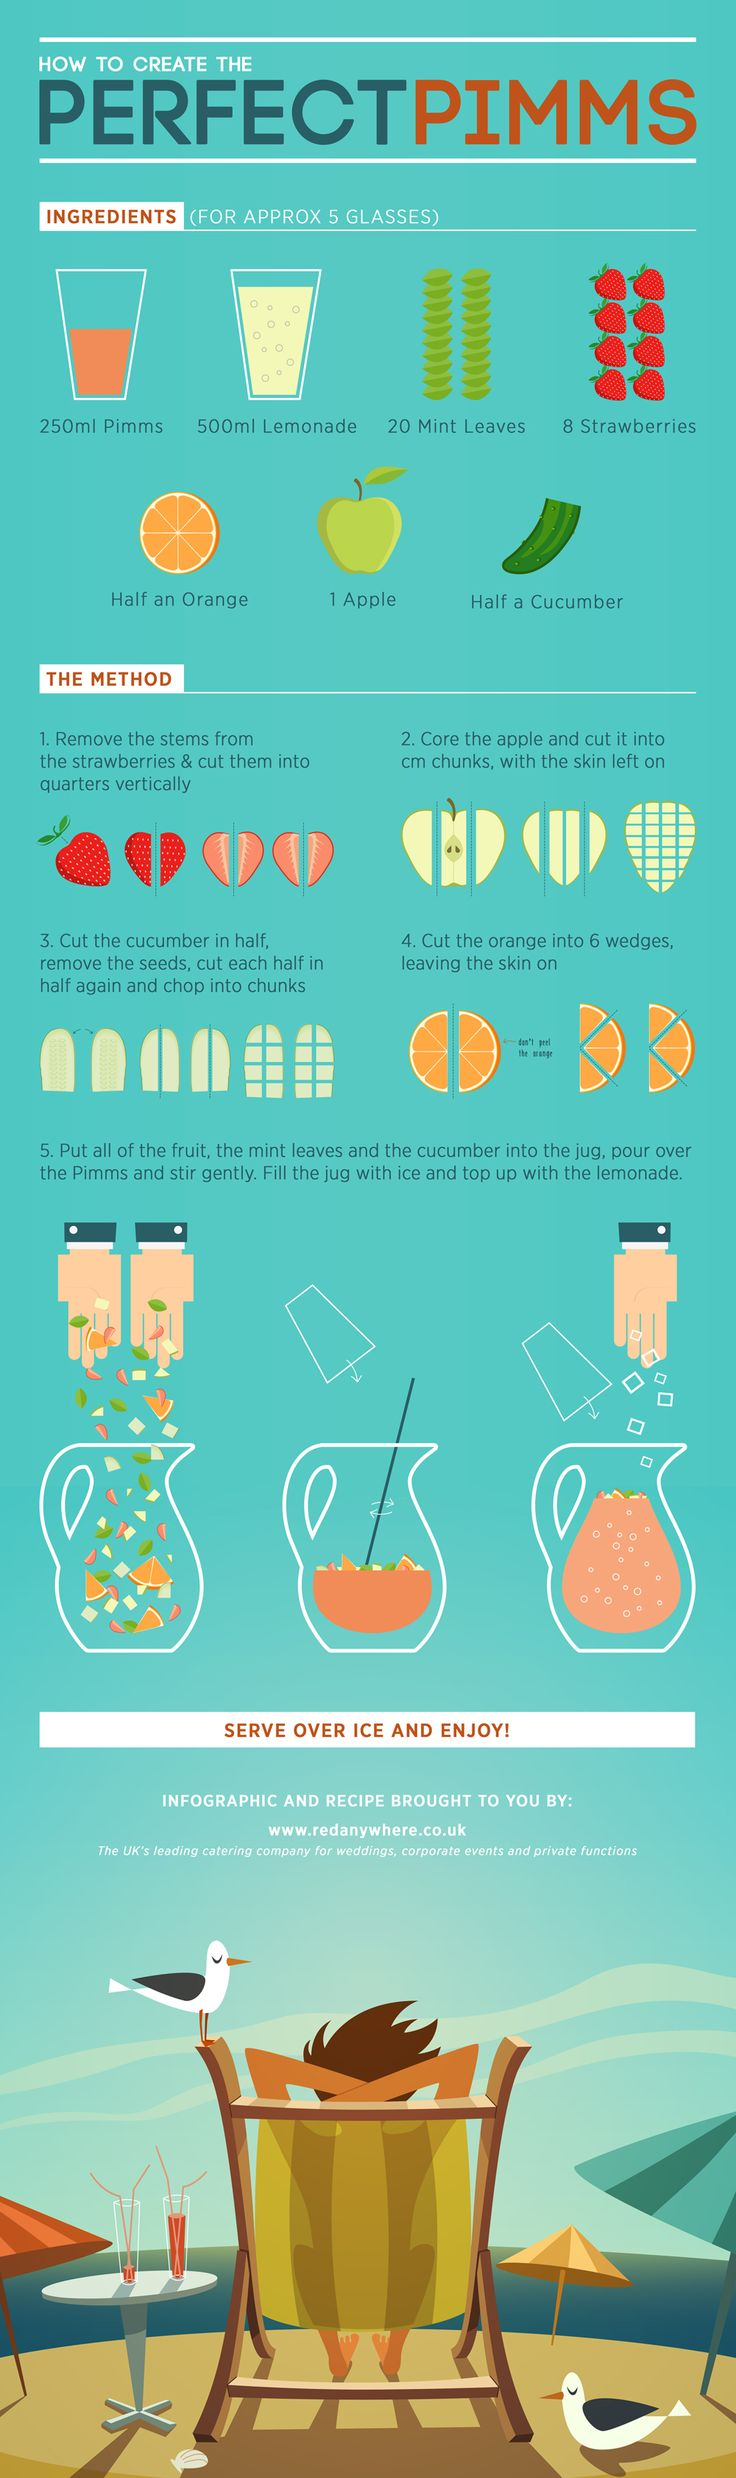 How to Create the Perfect Pimms (the ideal summer drink) #infografía